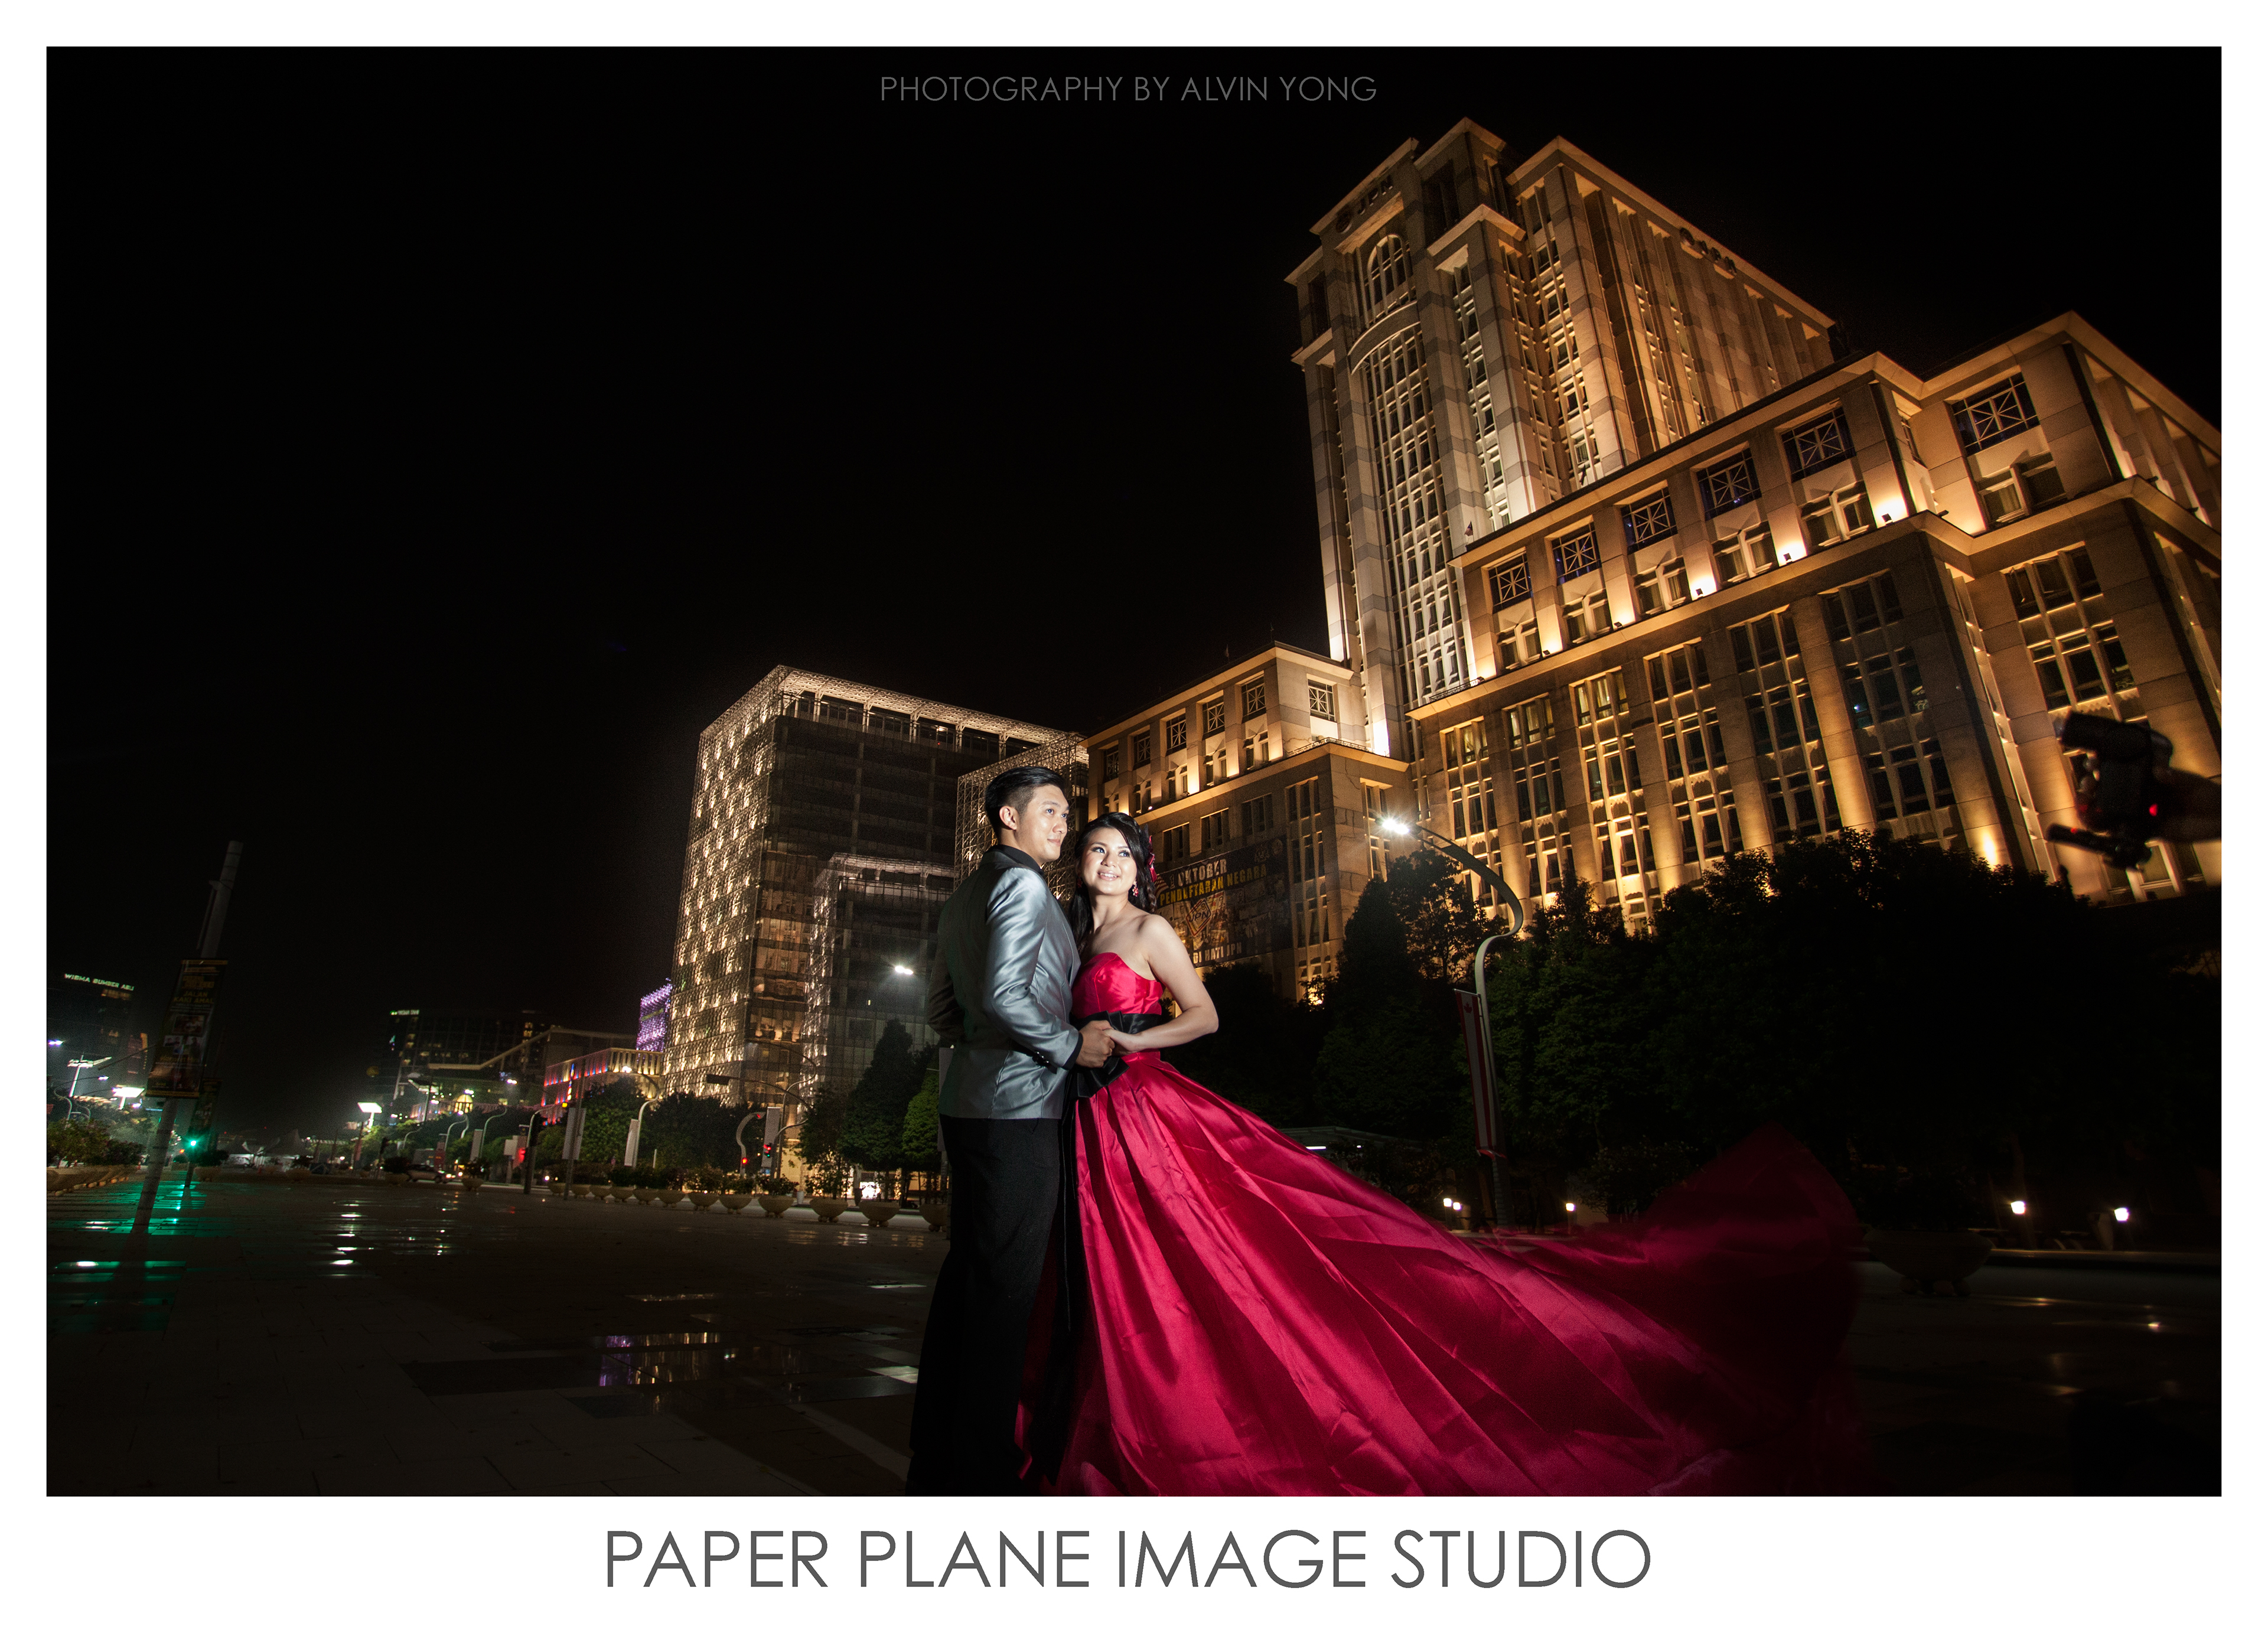 Pre-Wedding Photoshoot,Pre-Wedding Photographer , Pre-Wedding Video Shooting , Pre-Wedding Videographer,Pre-Wedding Photo Editor,Pre-Wedding Photo Package , Pre-Wedding Video Package , Photo Shooting,Video Shooting Photographer , Photographer Package , Videographer Package Malaysia ,Photographer Malaysia ,Pre-Wedding Photographer ,Malaysia Pre-Wedding Videographer ,Affordable Pre-Wedding Photo Package ,Creative Pre-Wedding Photographer  ,Creative Photographer , Creative Pre-Wedding Videographer